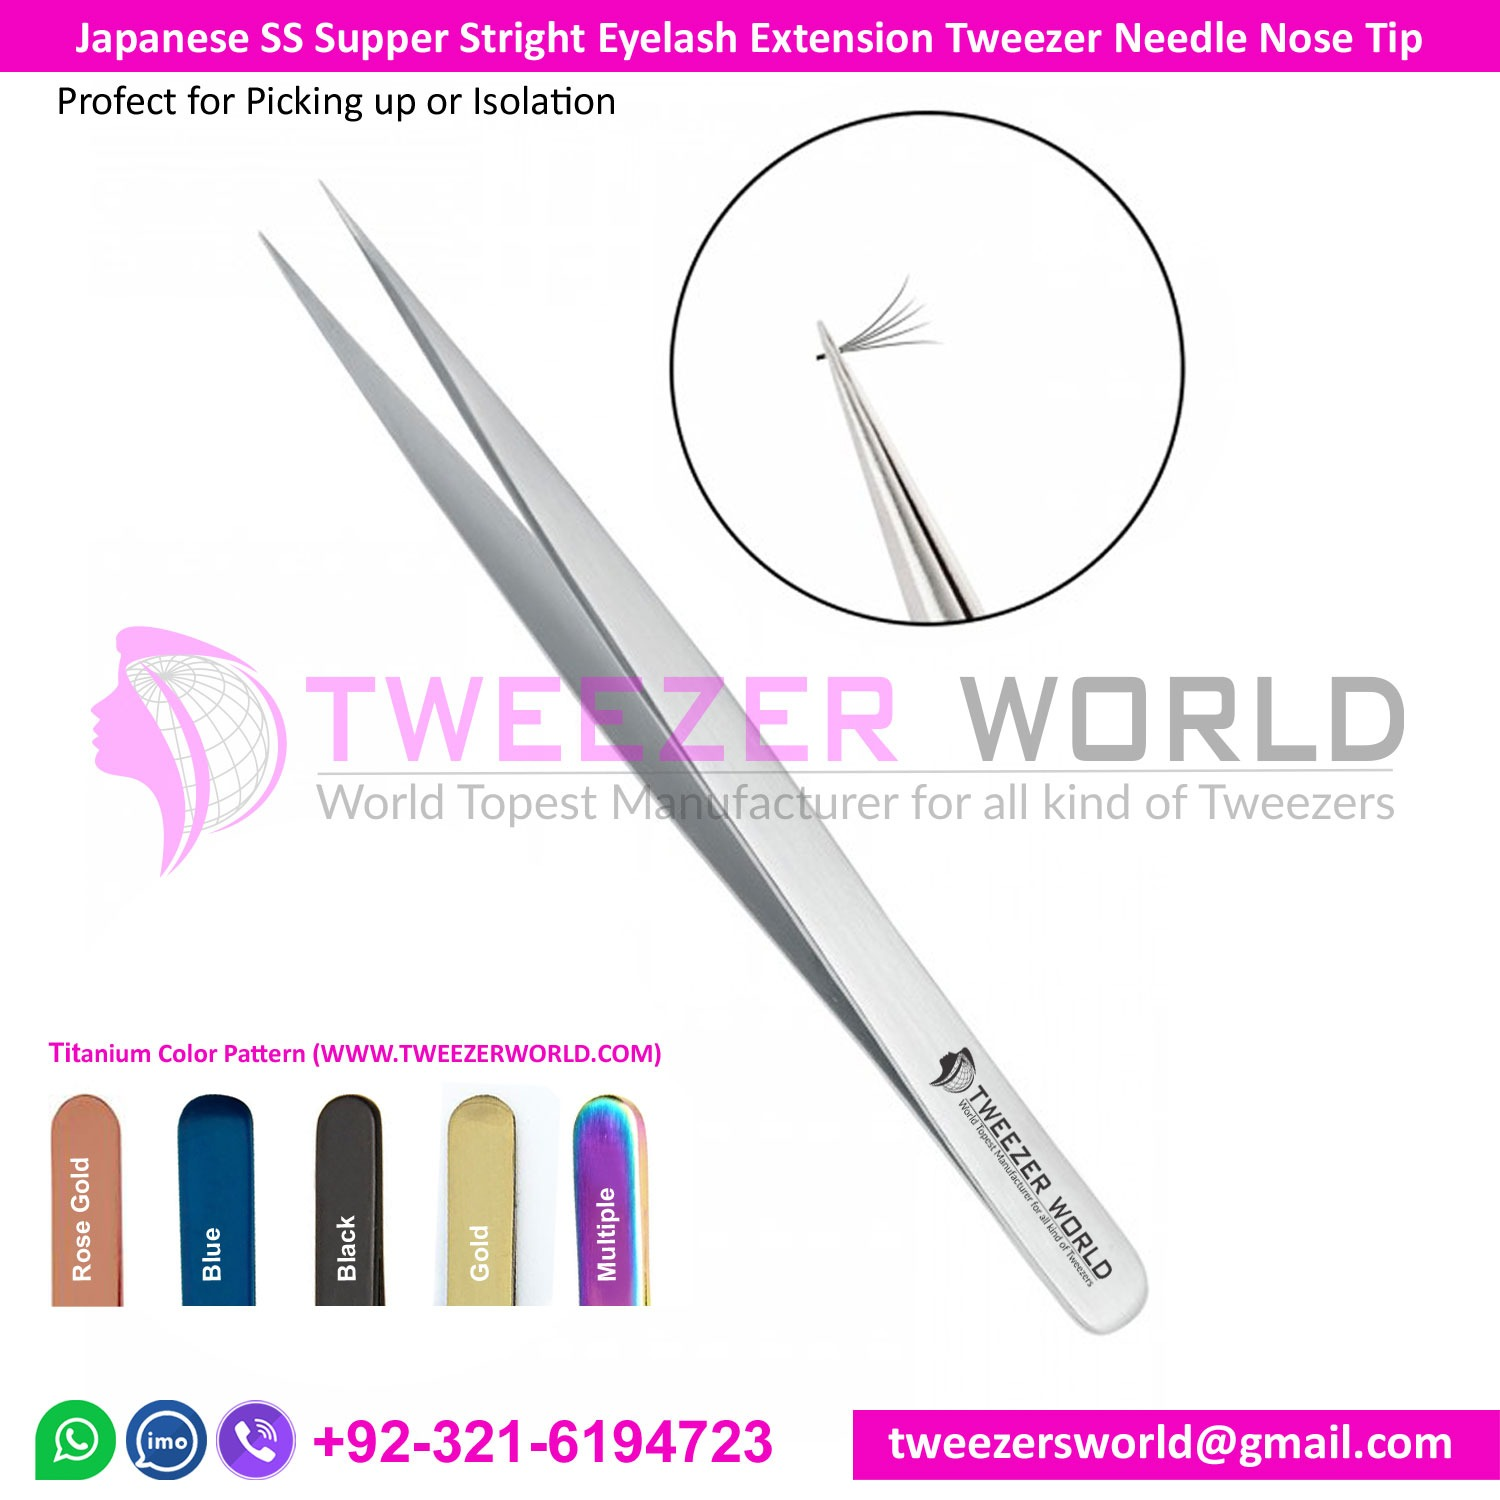 Eyelash Extensions Tweezers Super Straight Needle Nose Pointed